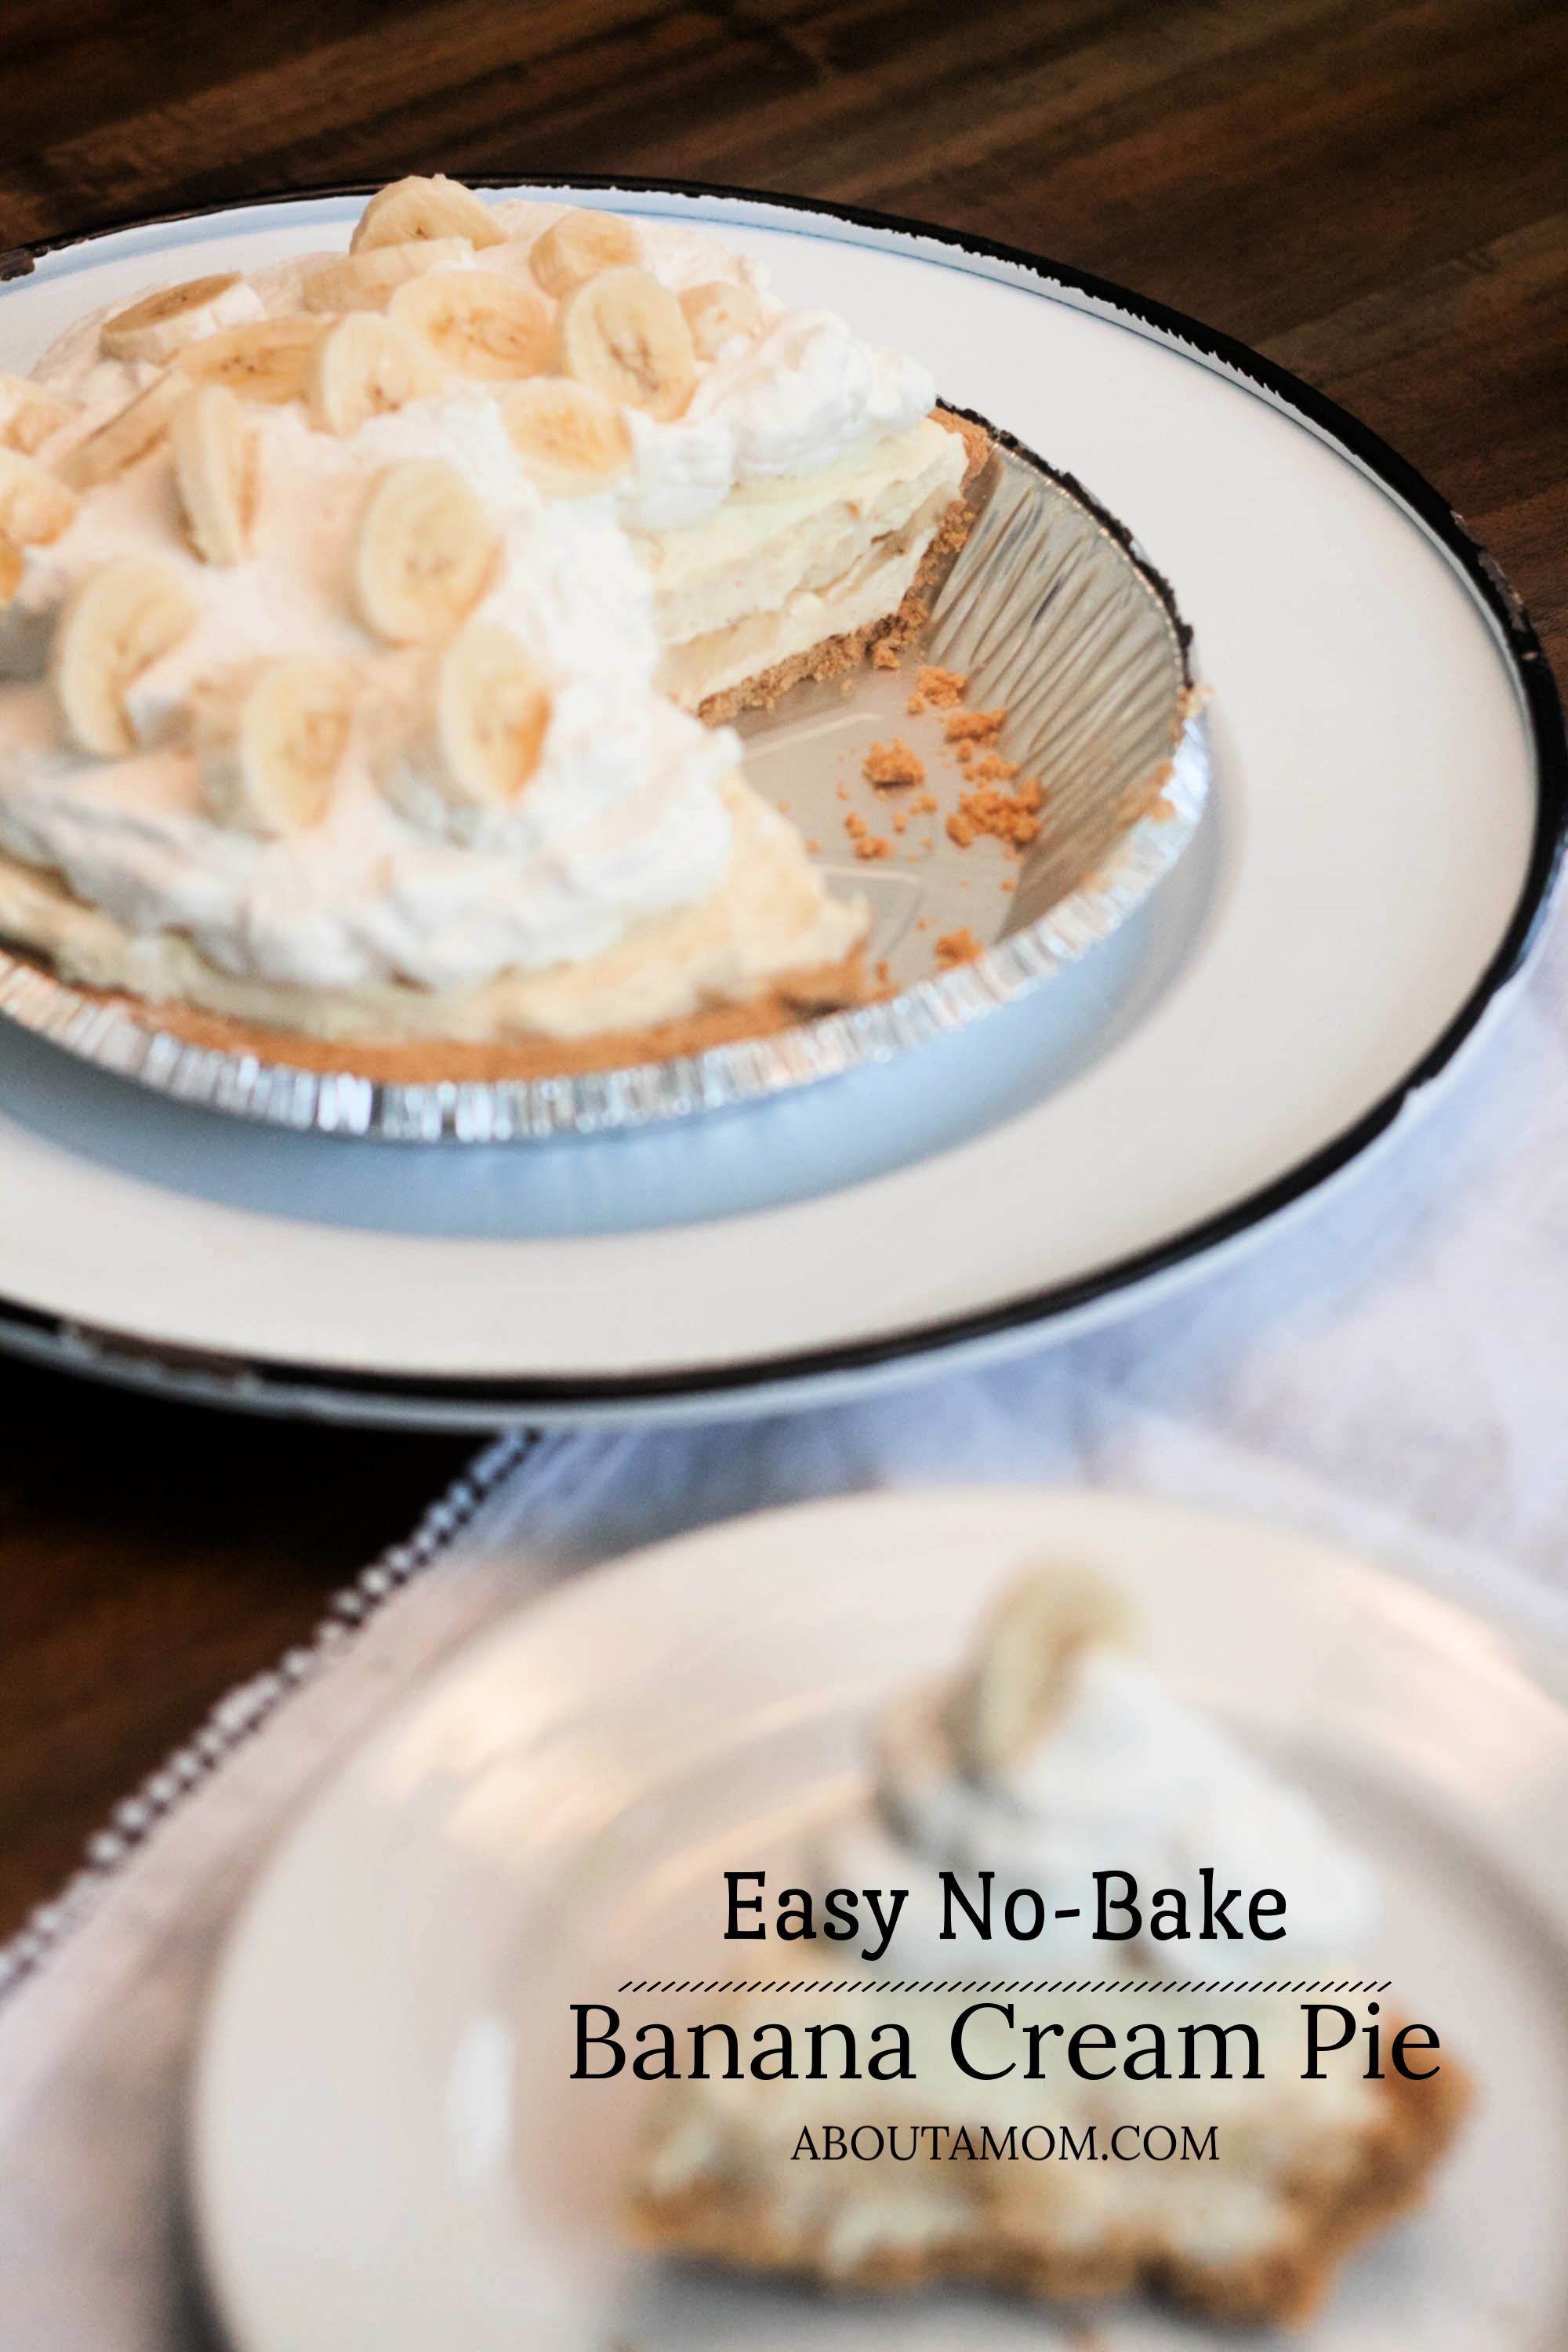 Looking for a banana cream pie recipe? This easy no-bake banana cream pie is perfect for a fast dessert. Whether you need a dessert for a picnic or potluck, dessert for guests or a simple weeknight dessert, this pie is the perfect choice.